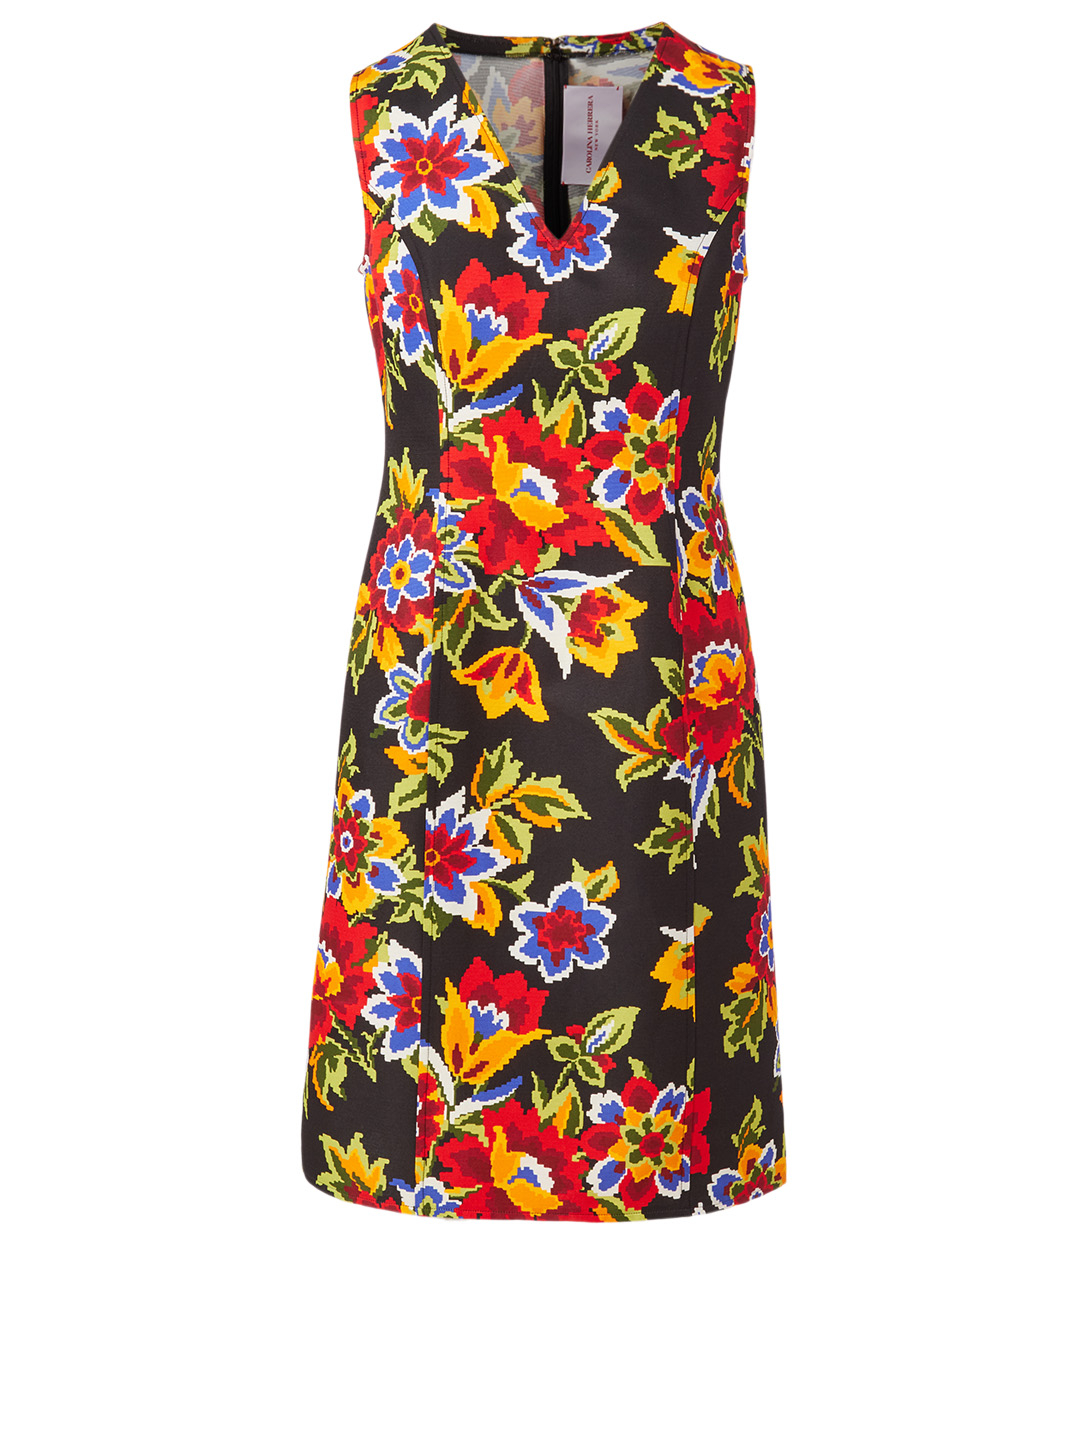 CAROLINA HERRERA Cotton And Silk Dress In Floral Print Women's Black